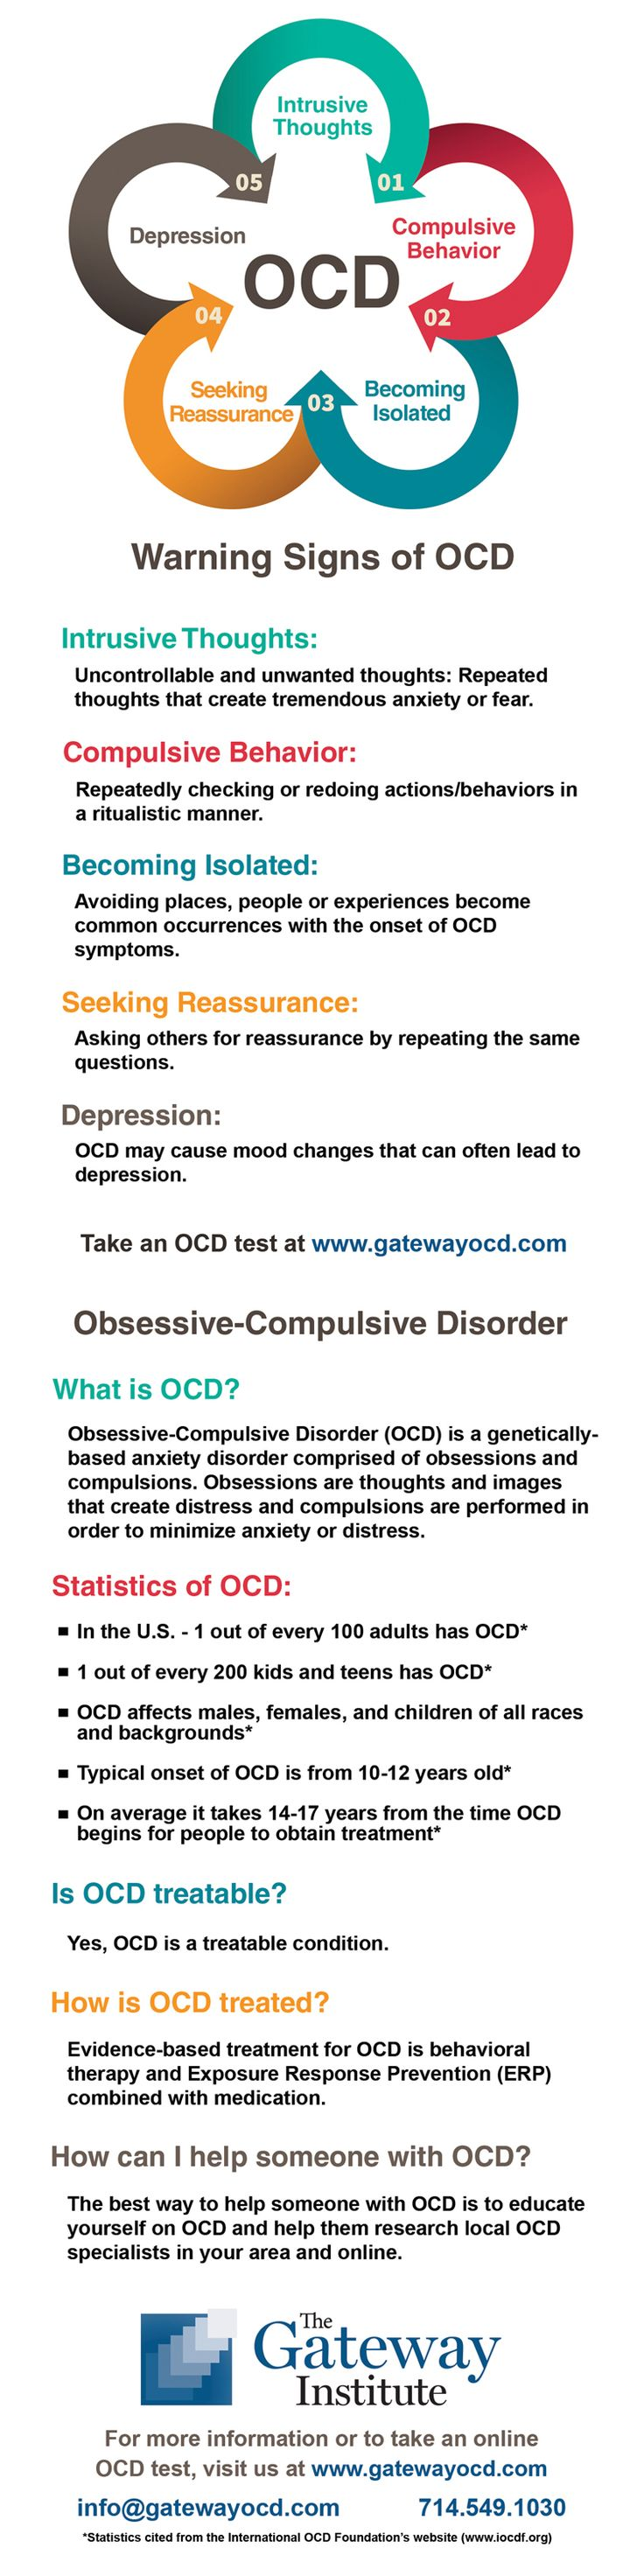 Obsessive-Compulsive Disorder (OCD) is a genetically-based anxiety disorder comprised of obsessions and compulsions that impacts over 2 million people in the US alone. Typical onset of OCD is between the ages of 10-12 years old. OCD is a treatable condition although; on average it takes 14-17 years from time OCD begins to obtain treatment. There are 5 warning signs that help someone identify OCD in someone else. The warning signs to be aware of are someone talking about intrusive, unwanted…